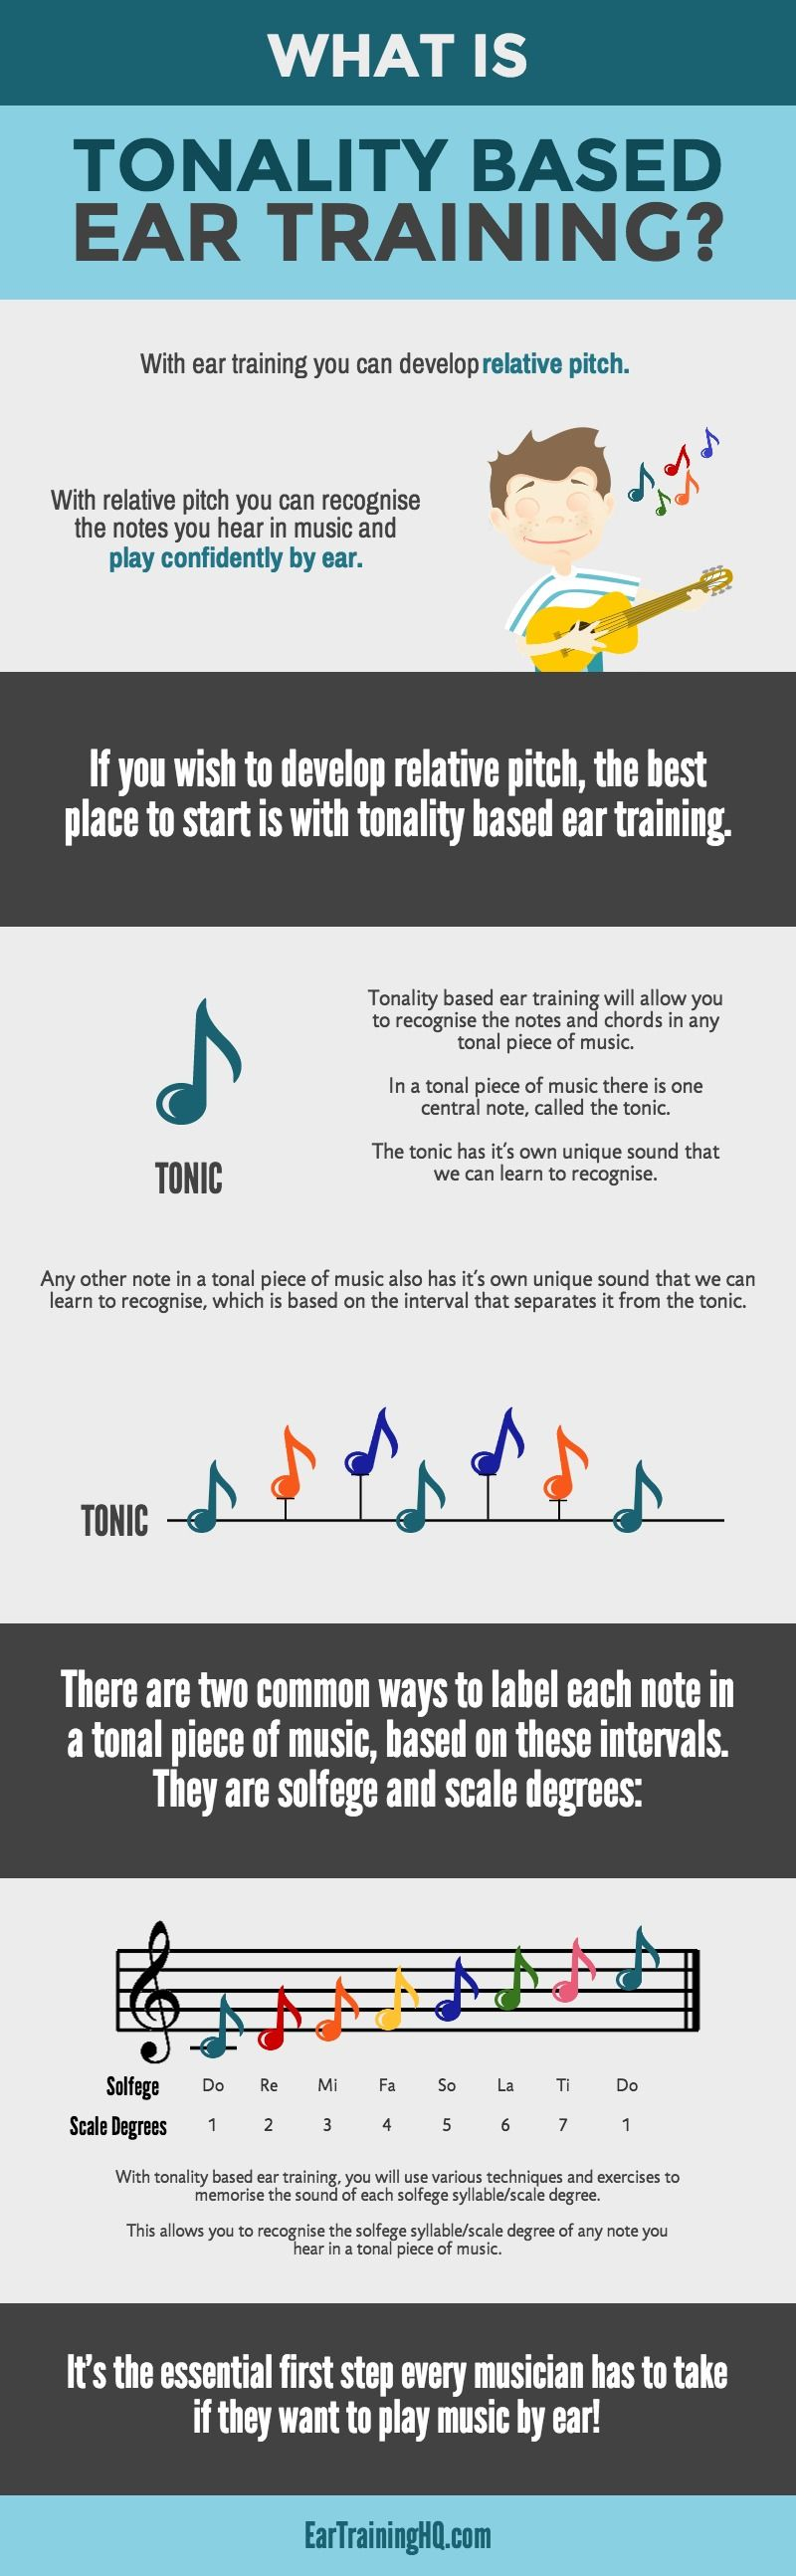 What Is Tonality Based Ear Training An Infographic That Explains One Of The Most Important Ear Training C Learn Music Music Lesson Plans Music Theory Lessons